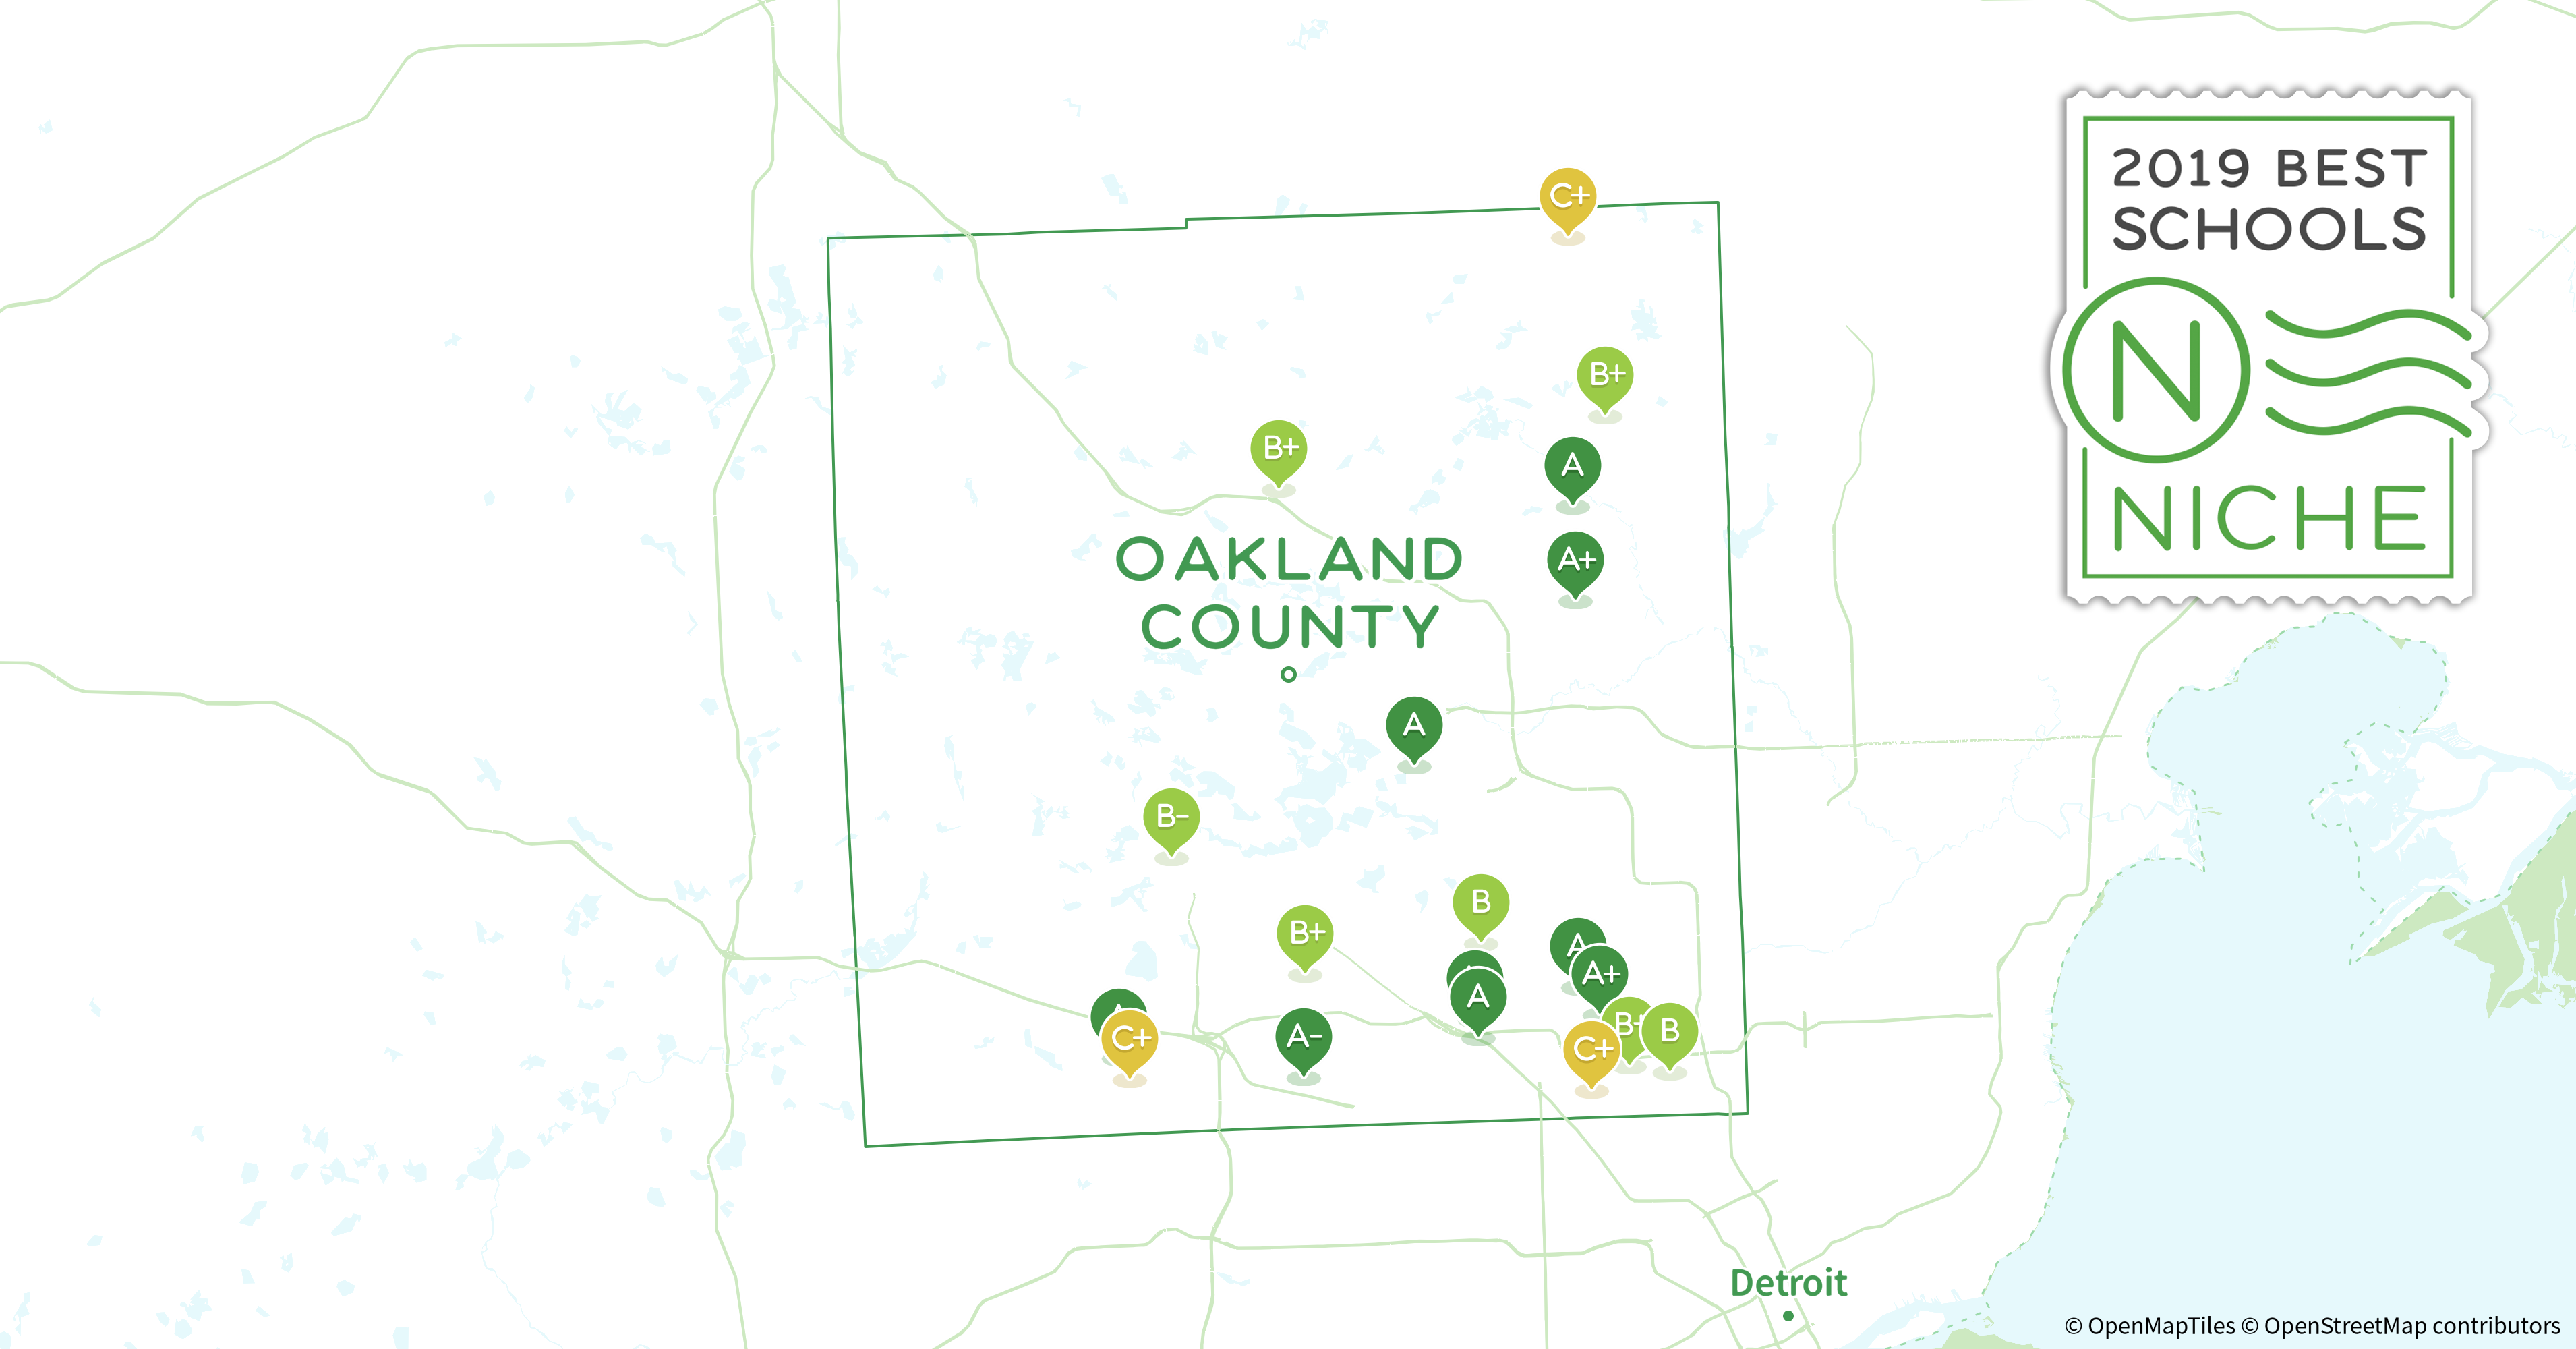 2019 Most Diverse Public High s in Oakland County, MI ... Map Oakland County Mi on oakland county section map, oakland county jail, oakland county sheriff, oakland county drain map, oakland county complex map, oakland county plat map, oakland county road map, oakland county city map, oakland county detroit, oakland county township map, oakland county district map, macomb county drain map, oakland county map view, oakland zip codes by map, oakland michigan map, village lake orion michigan map, oakland county map printable, oakland university map, michigan county map, oakland county townships and cities,